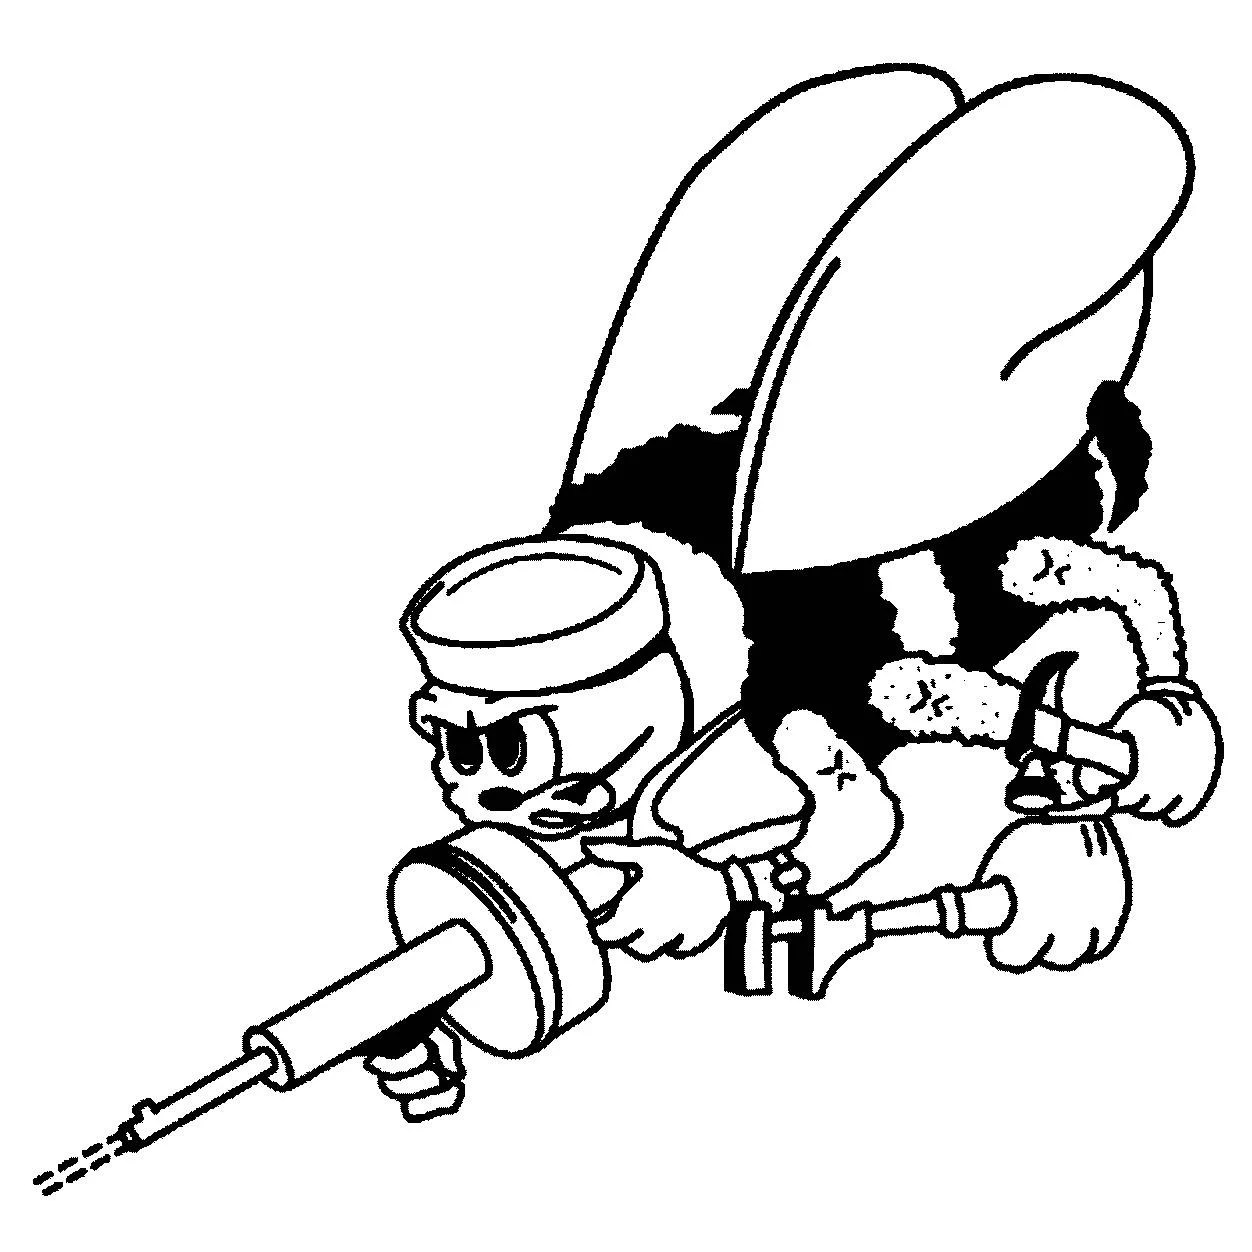 Dxf Us Navy Seabee Dxf File Good For Use On Cnc Machines